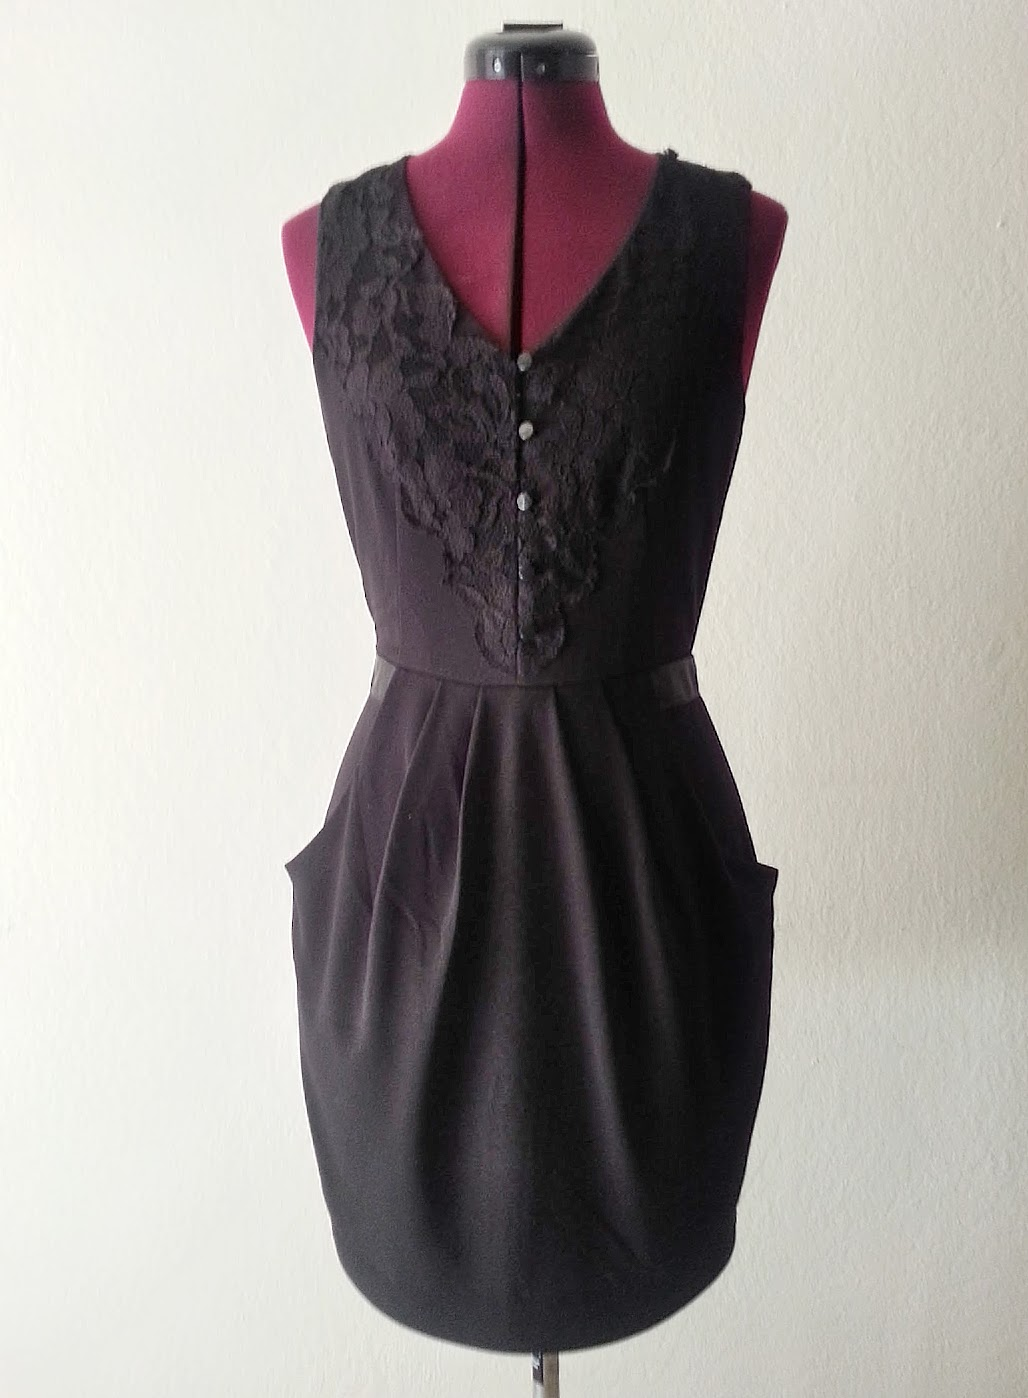 LBD as-is: Removable Dress Extension - DIY Fashion Garments | fafafoom.com